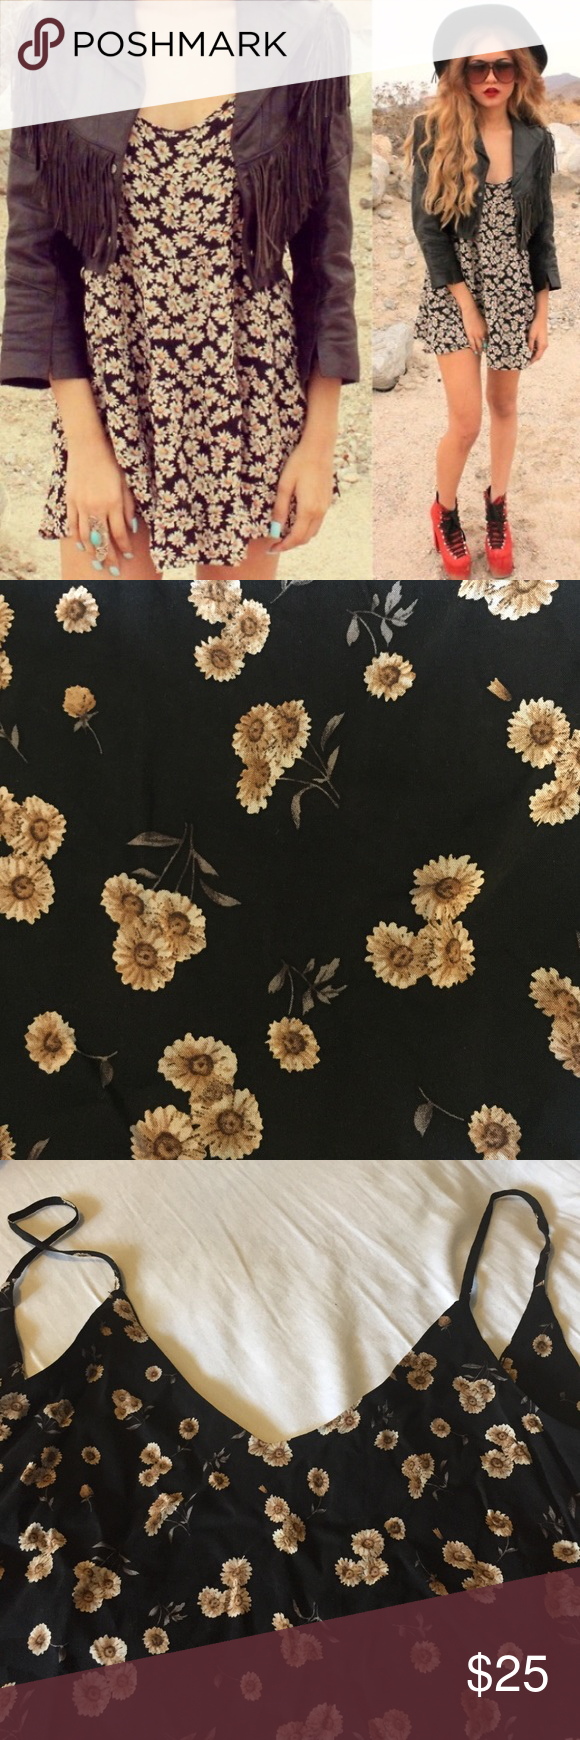 Brandy Melville brown daisy top Super cute brandy Melville dress top. Lightweight and perfect for the summer. Resembles jada dress. Back has a low v cut. Can be worn as a mini dress or long top Brandy Melville Dresses Mini